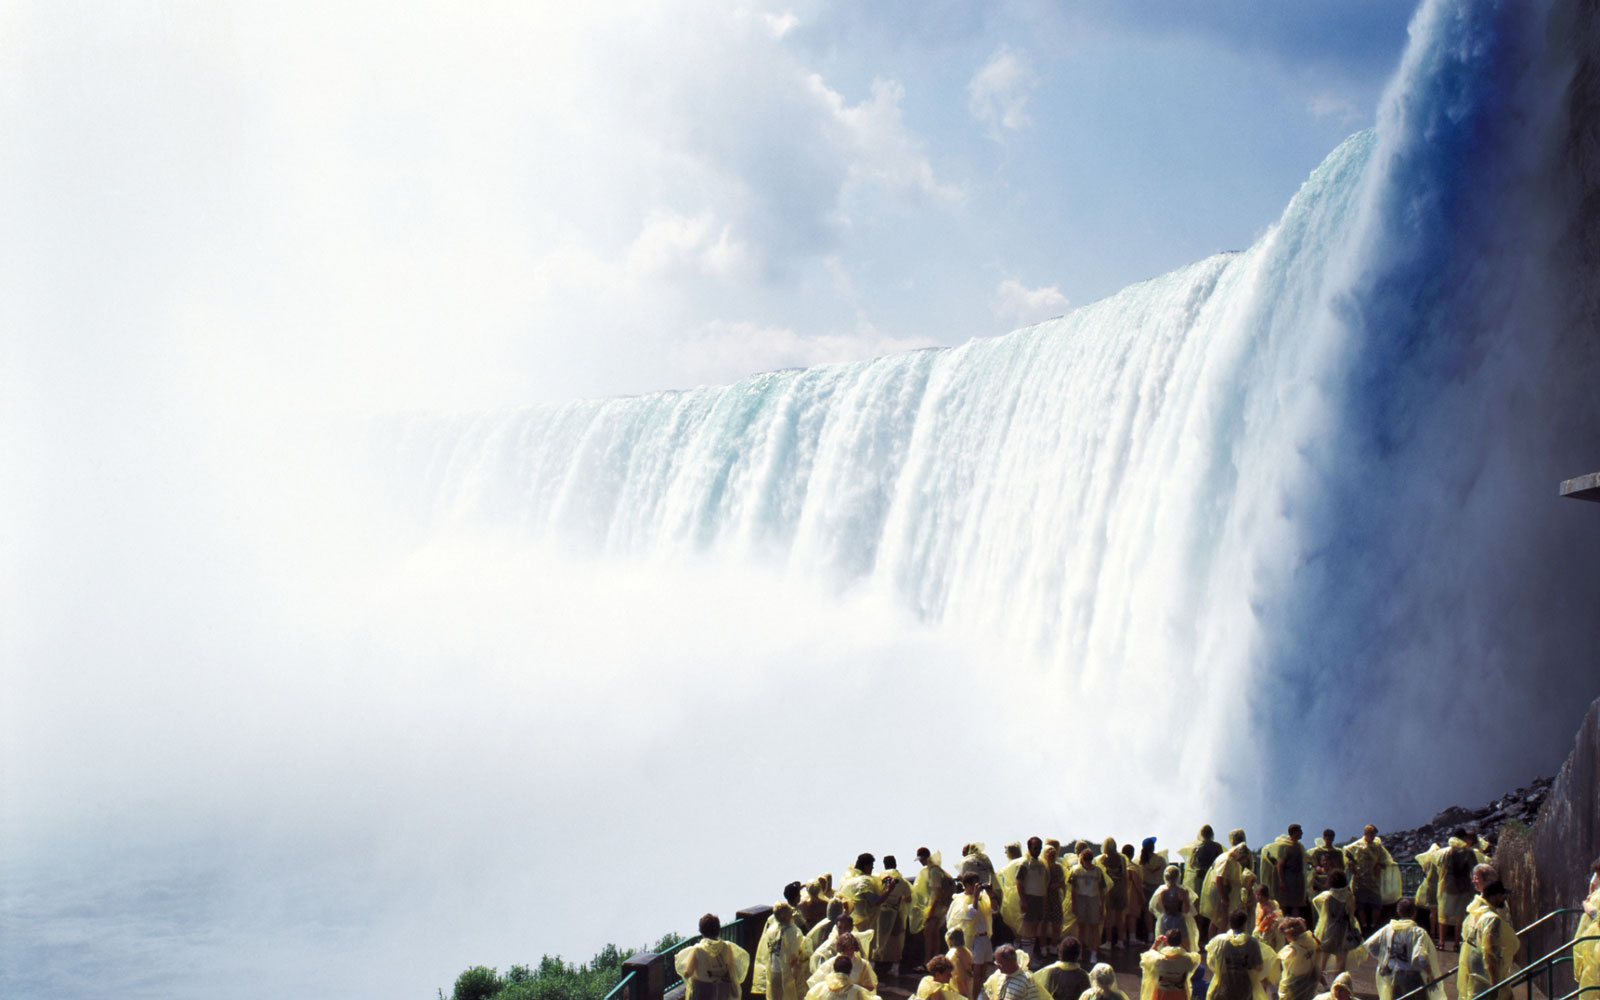 New York State Plans to 'Turn Off' Niagara Falls